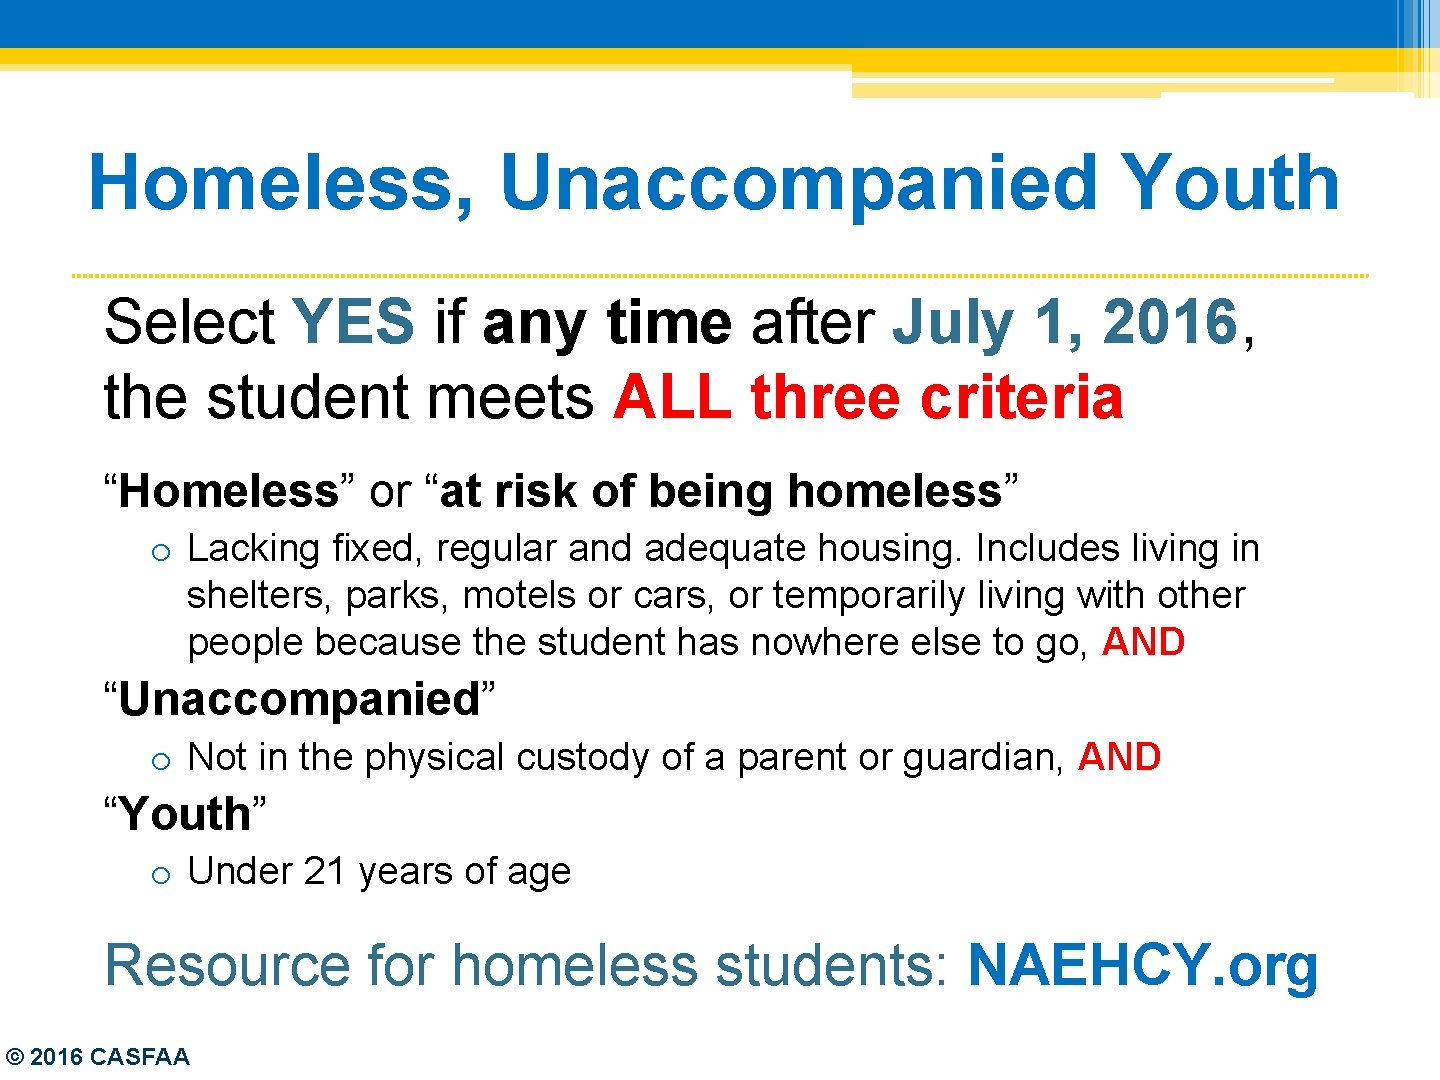 Homeless, Unaccompanied Youth Select YES if any time after July 1, 2016, the student